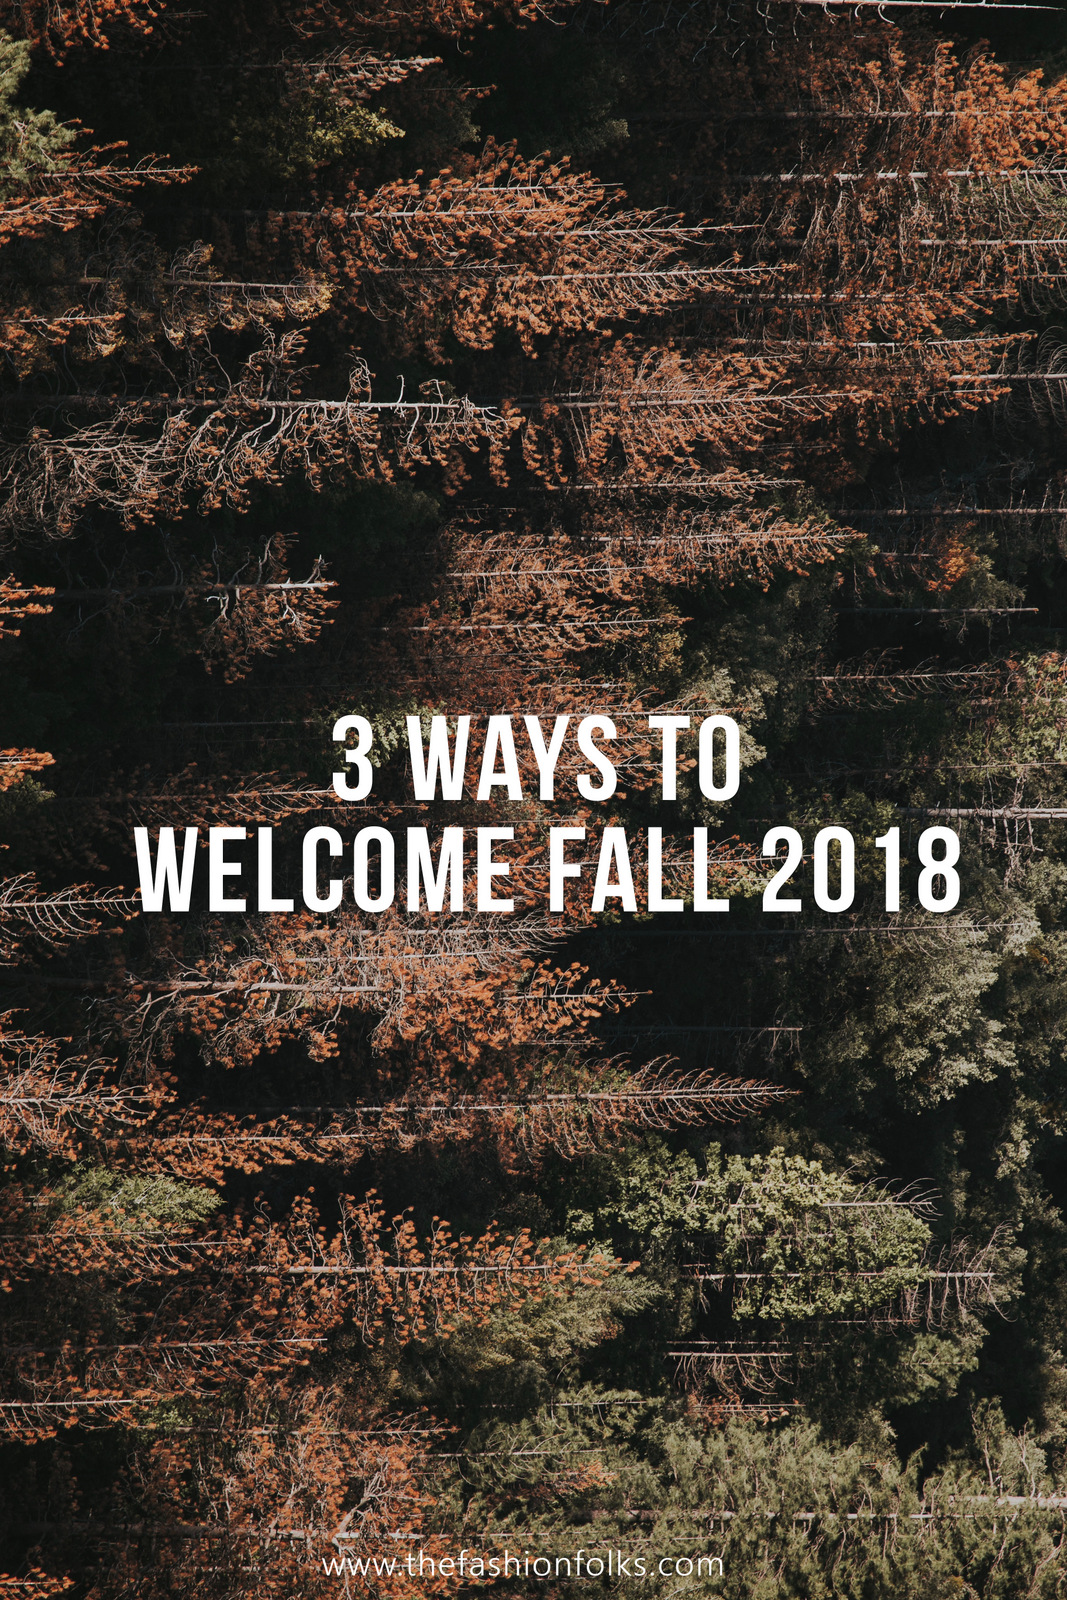 3 Ways To Welcome Fall 2018